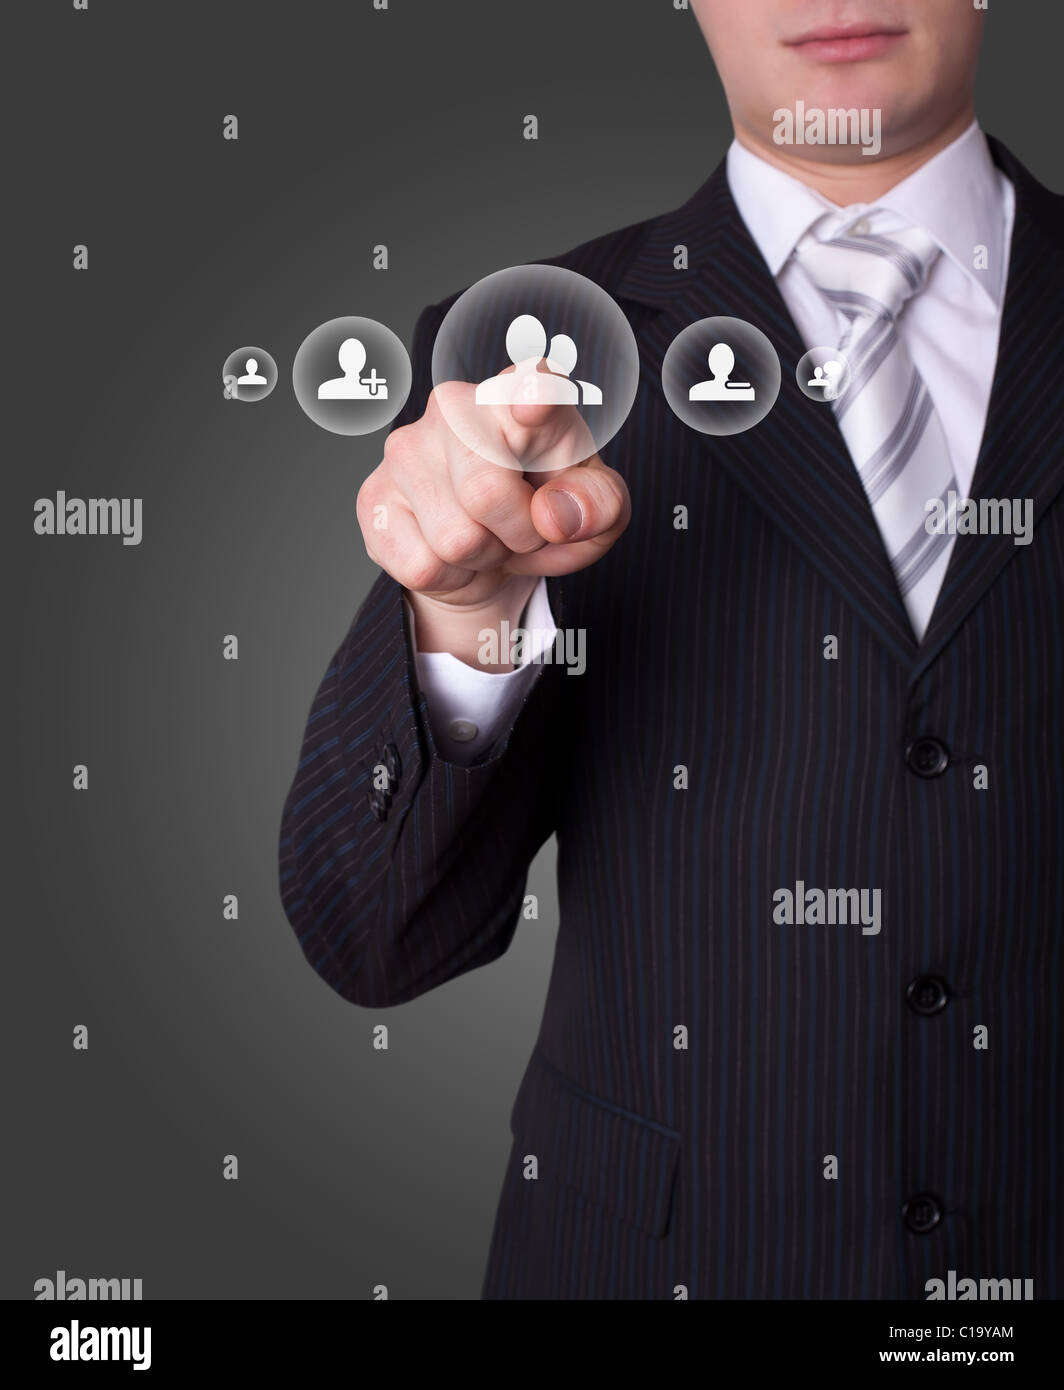 Man hand pressing social network button - Stock Image